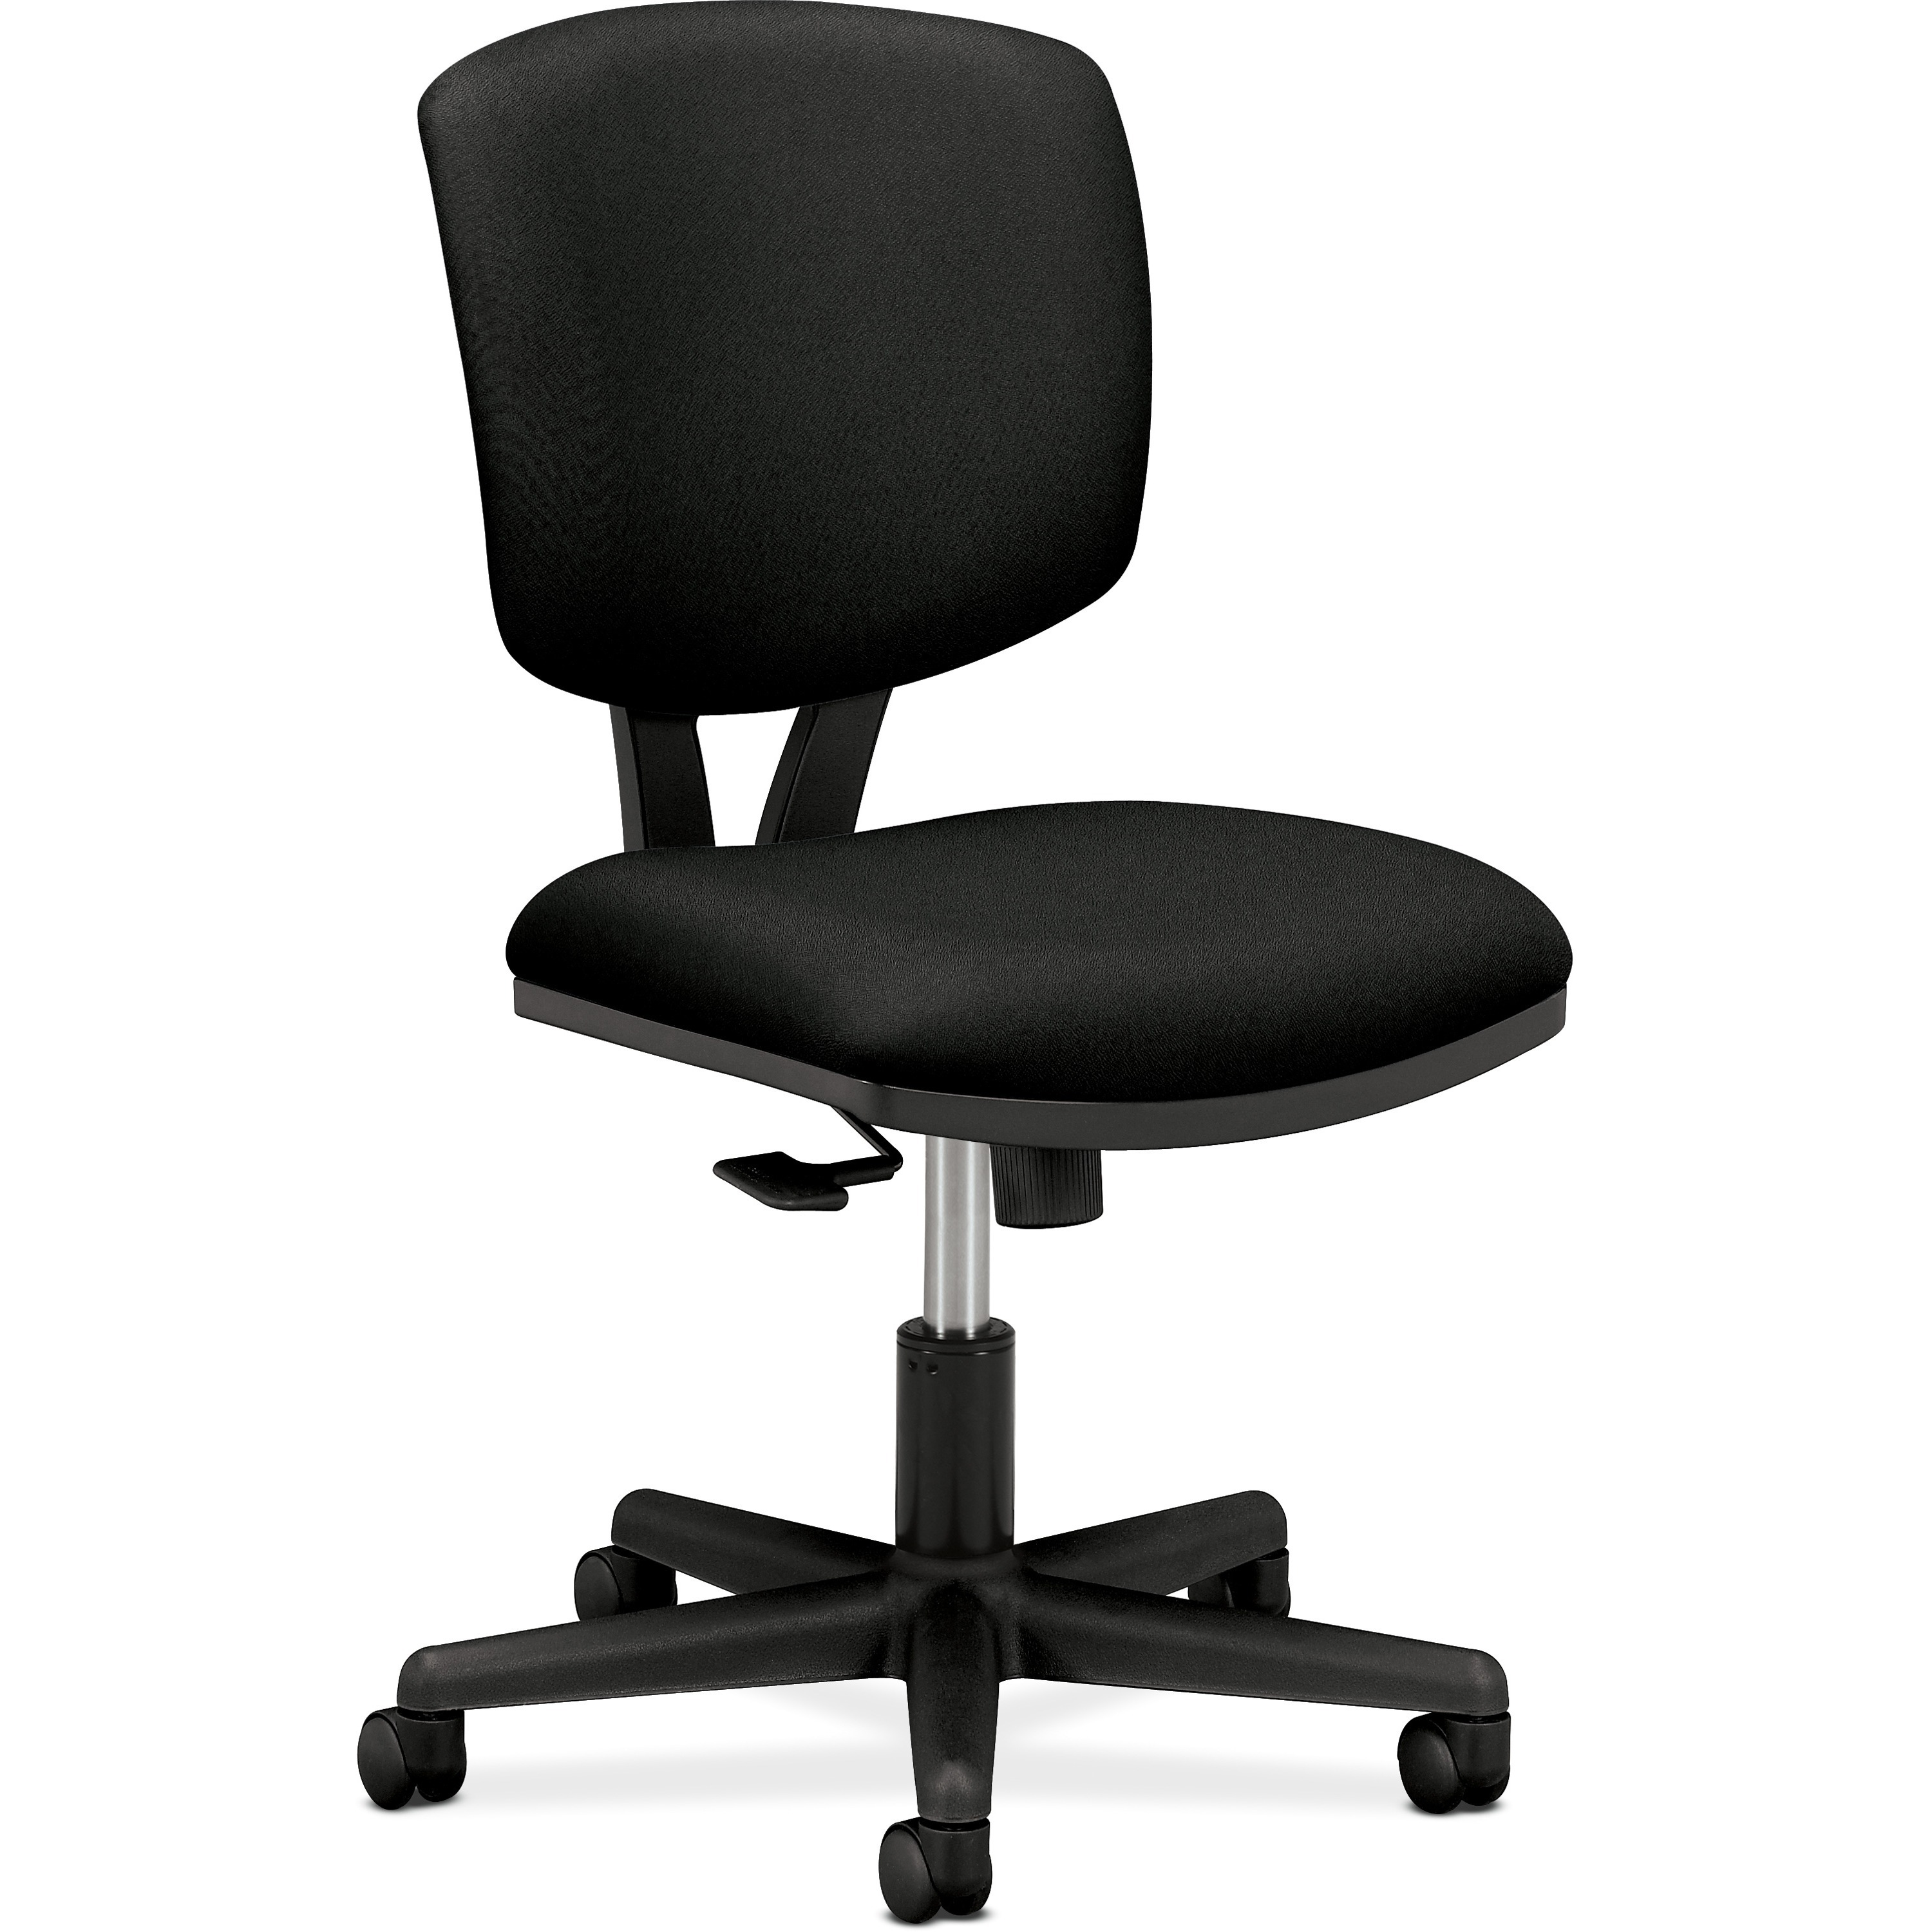 chair with accessories covers for sale toronto west coast office supplies furniture chairs